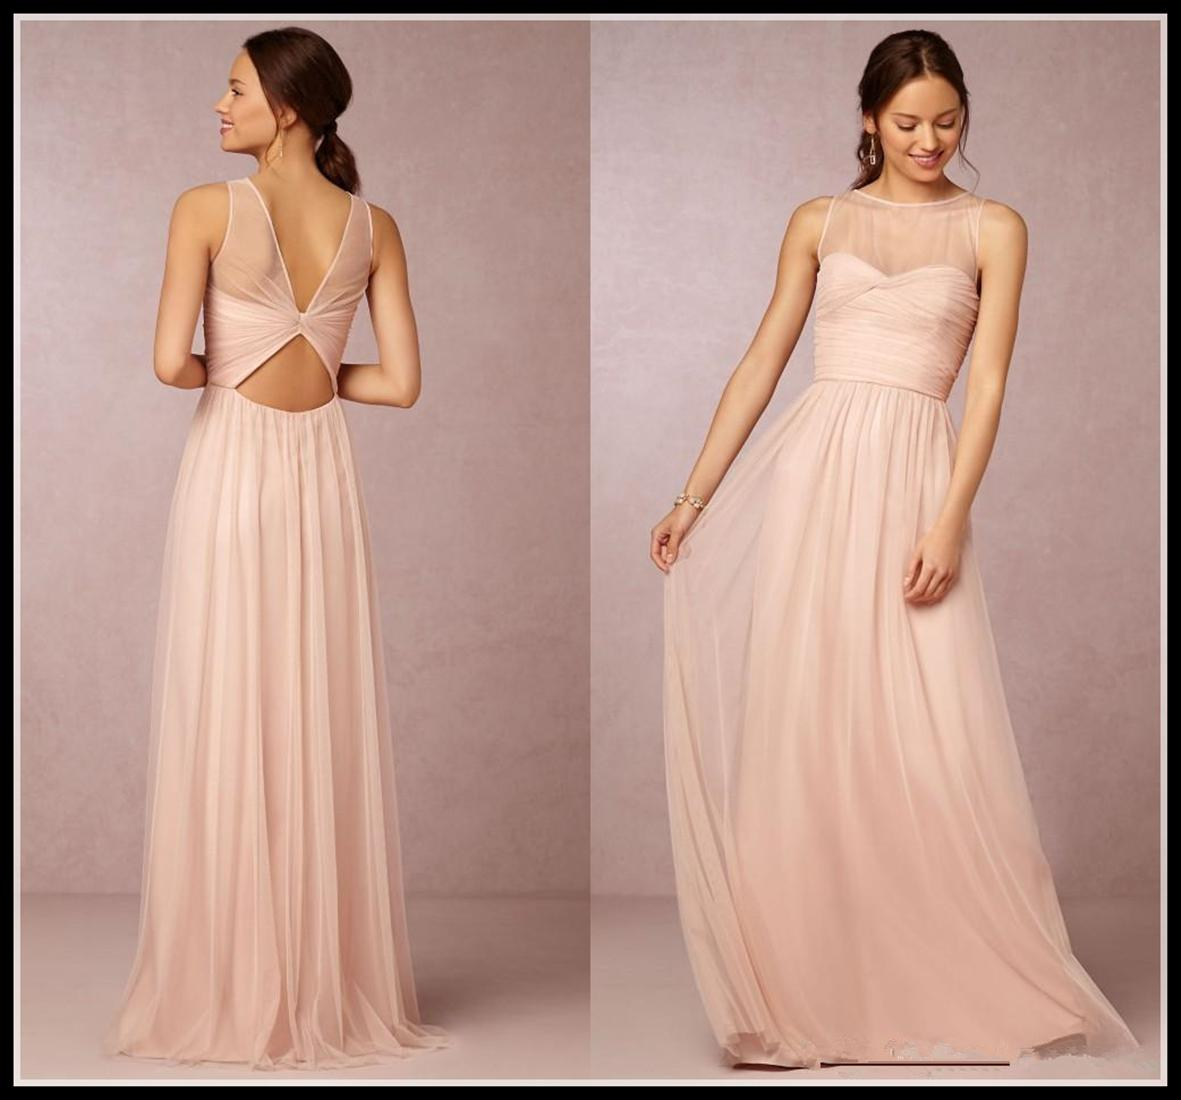 Emmani blush pink bridesmaid dresses 2016 cheap crew neck tulle specialized in wedding gown and all kinds of dressescause of all our items are customrizedso when you make an orderplease send a message to us and ombrellifo Images